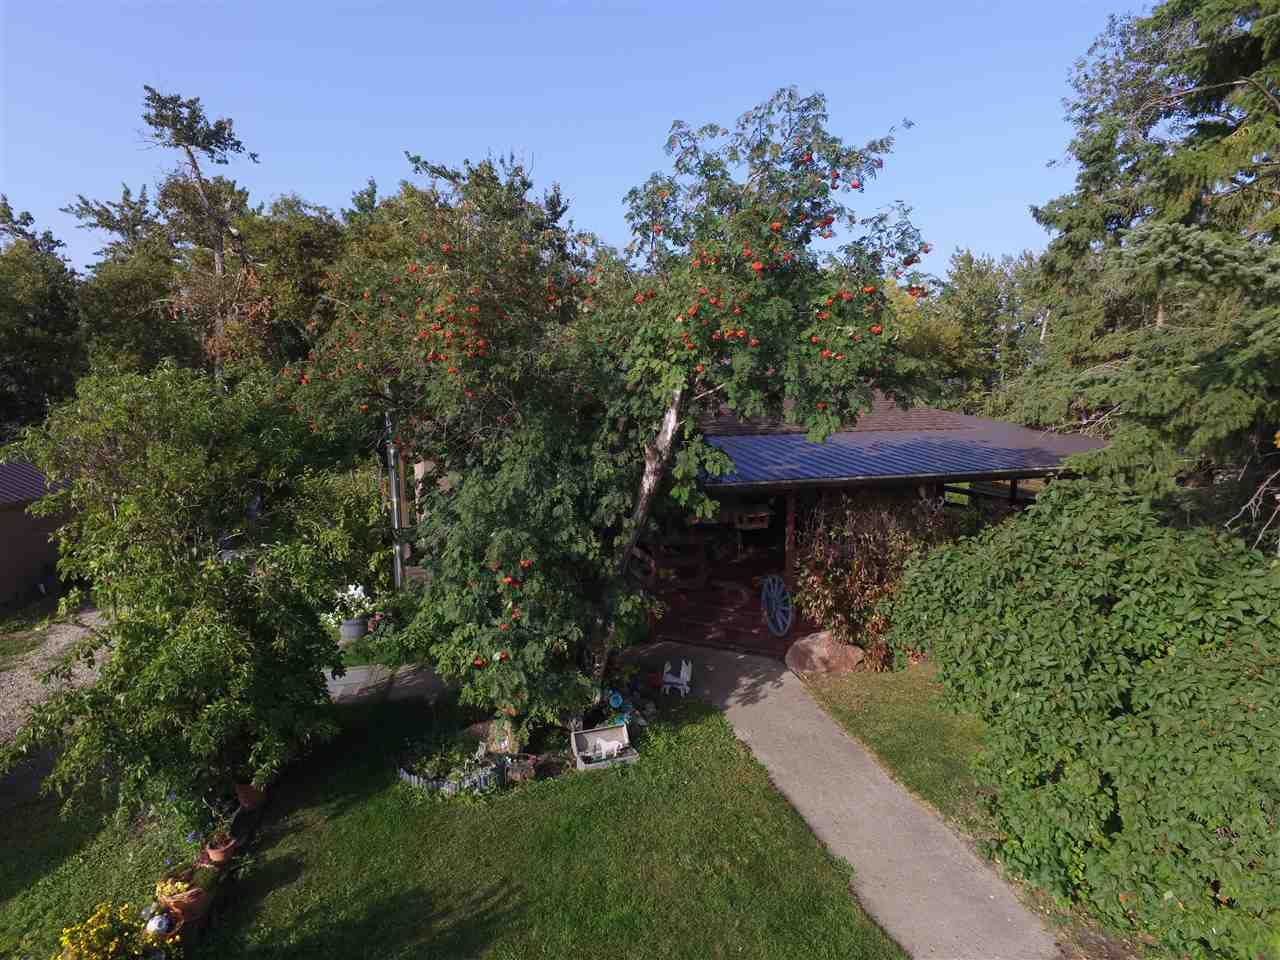 Photo 4: Photos: 472050A Hwy 814: Rural Wetaskiwin County House for sale : MLS®# E4213442